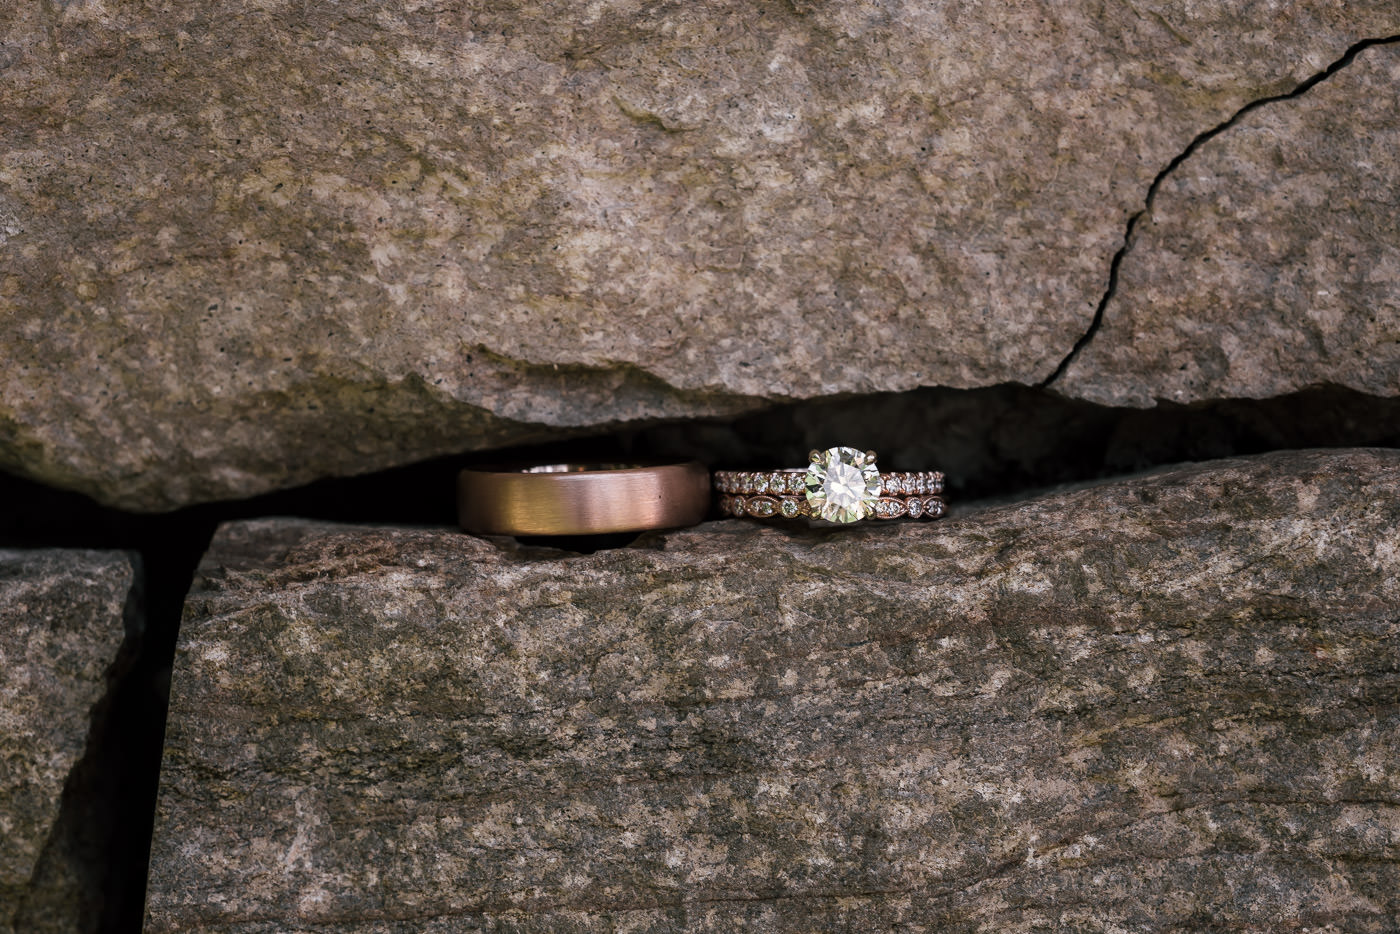 Wedding rings sit beside eachother in the narrow gap between stones on a rock wall.